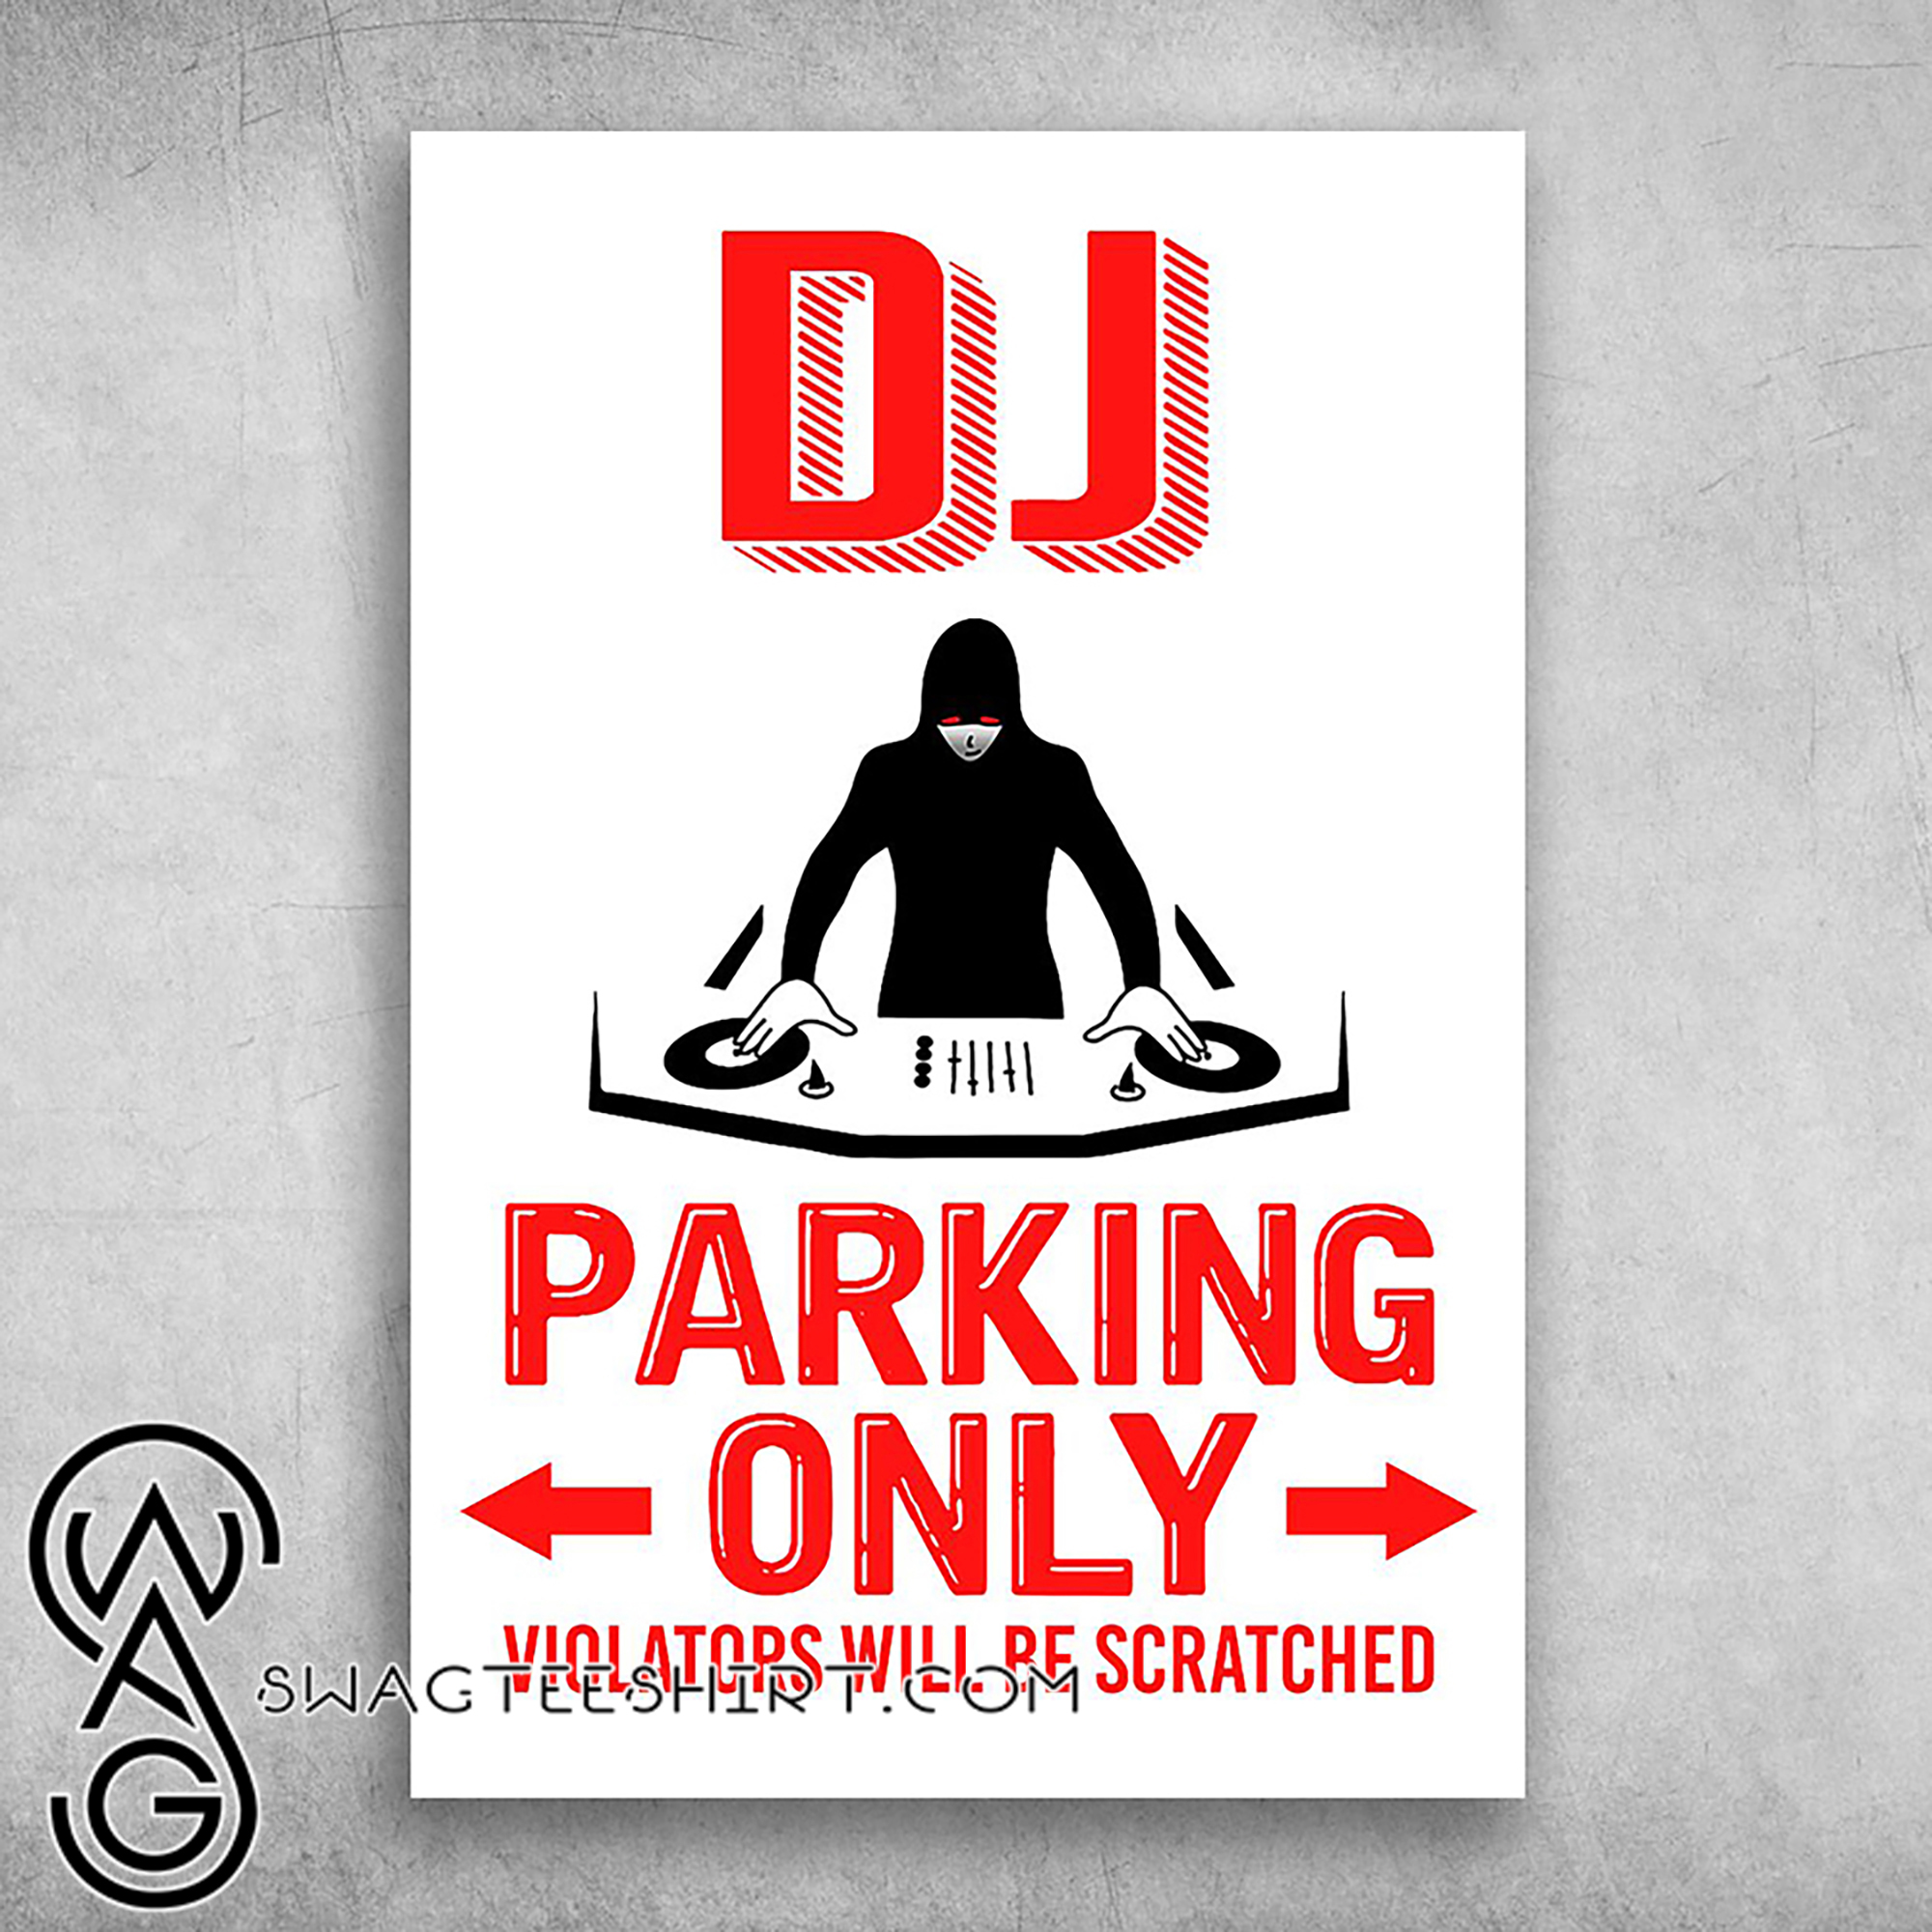 Deejay Dj Parking Only Violators Will Be Scratched Poster